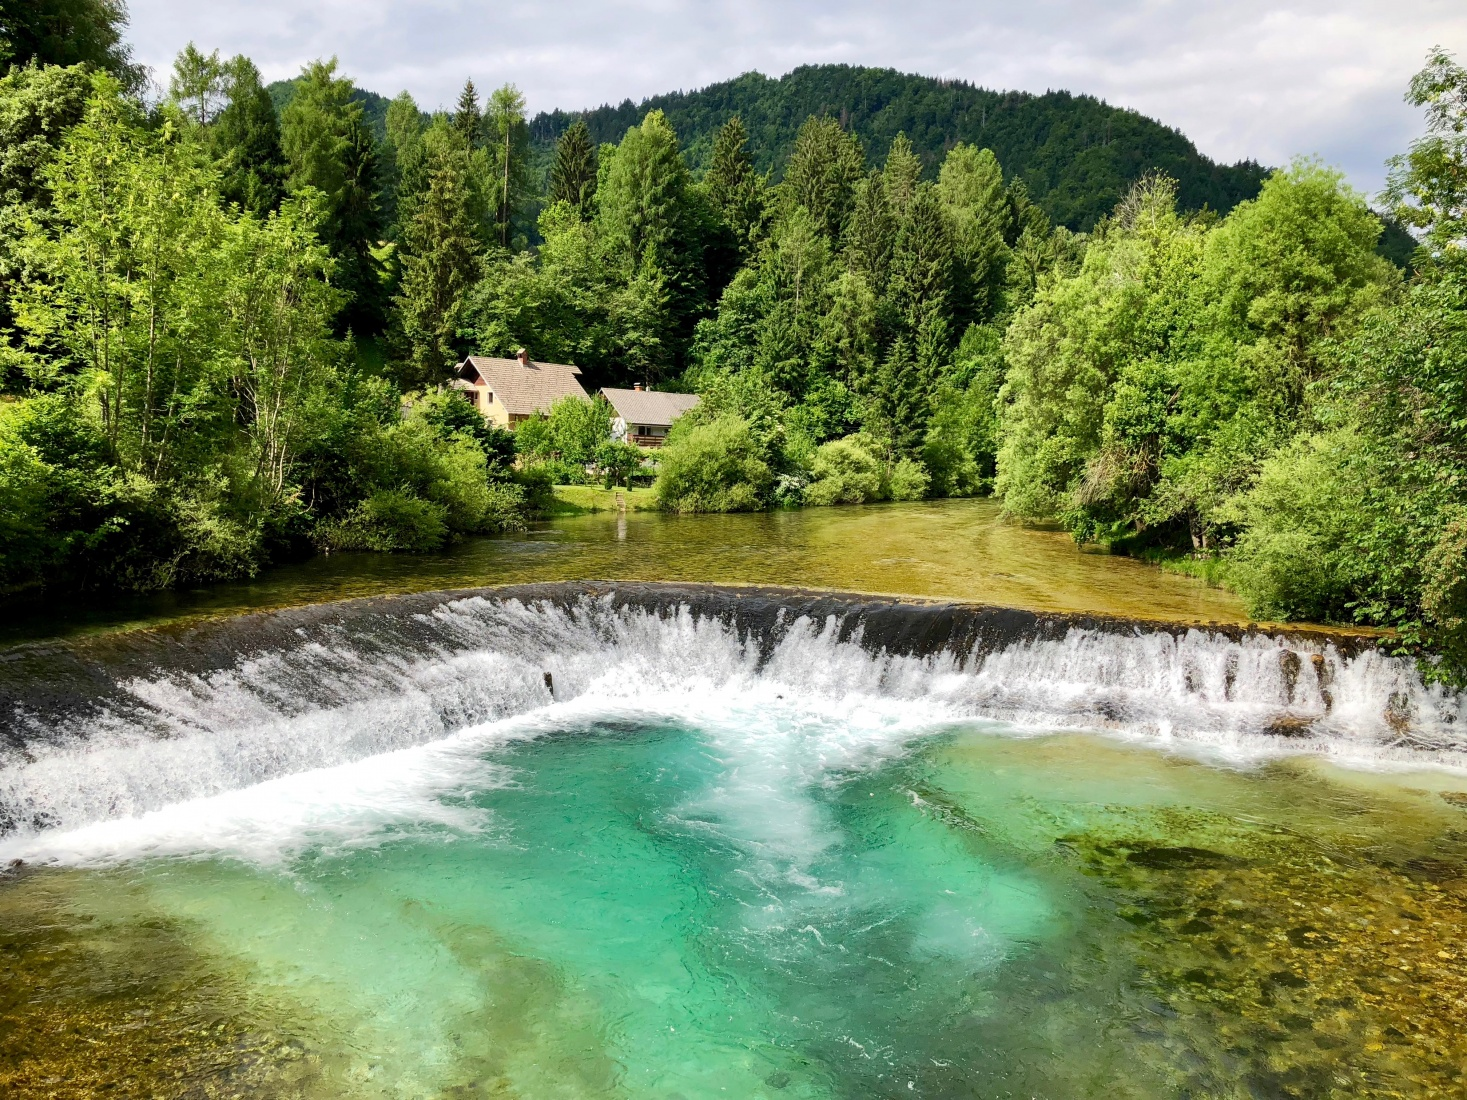 A stunning green-blue waterfall and waterway on the way out of Lake Bled, Slovenia, toward the Radovna Valley, near Krnica.